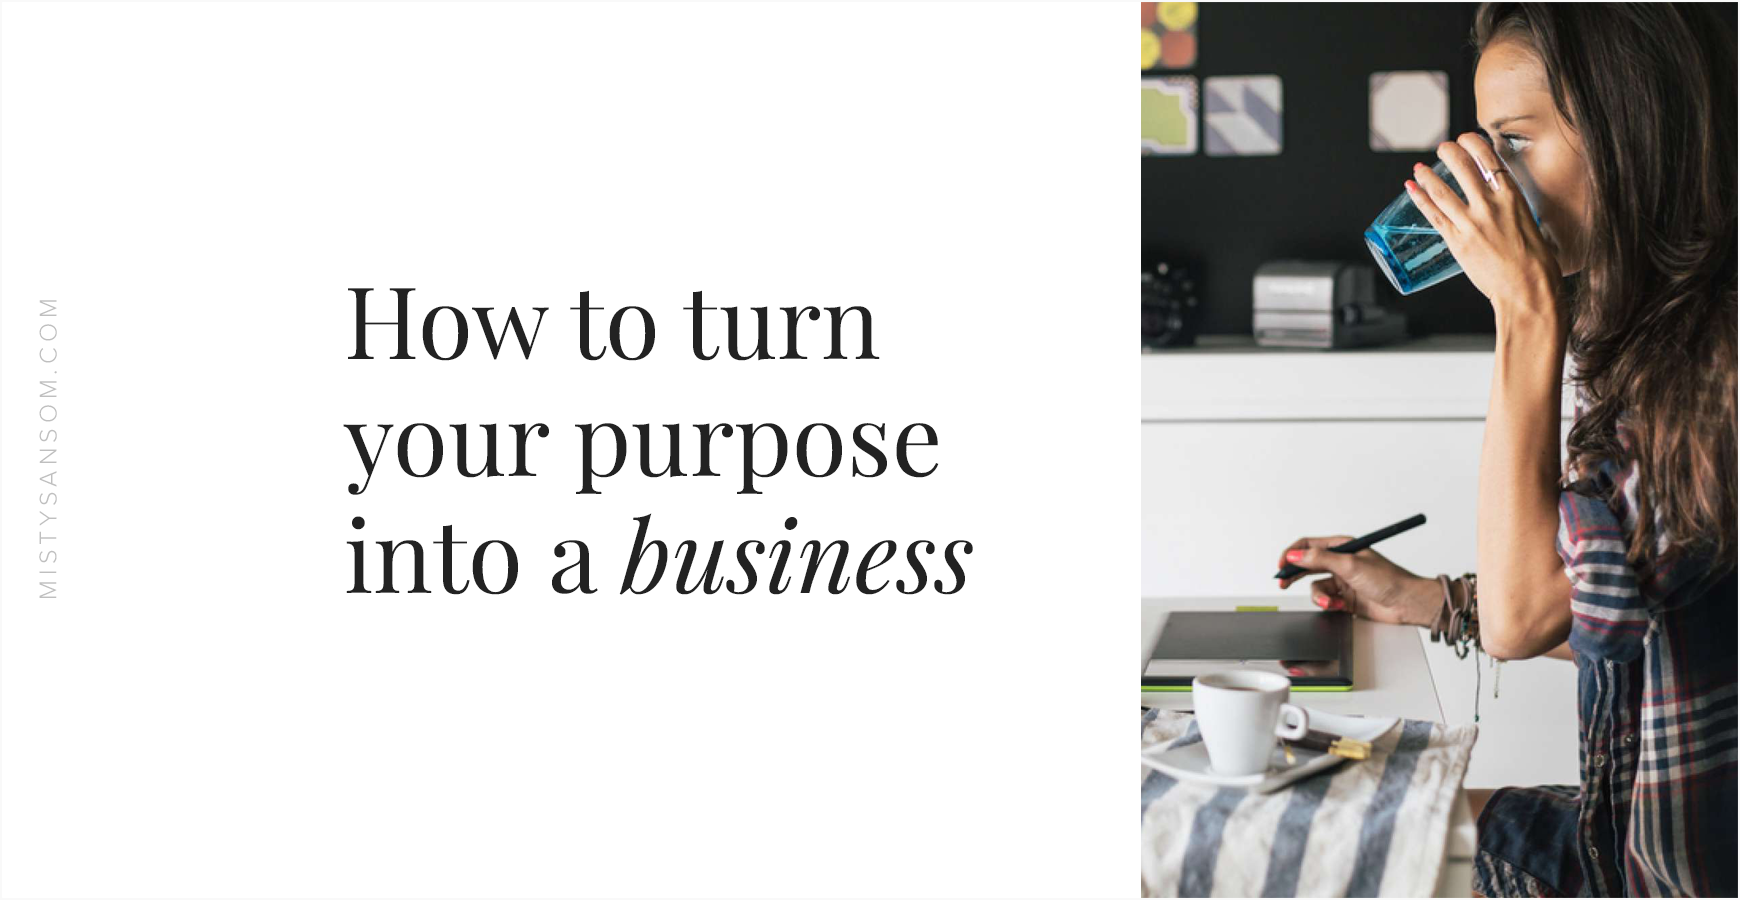 How-to-turn-your-purpose-into-a-business.png